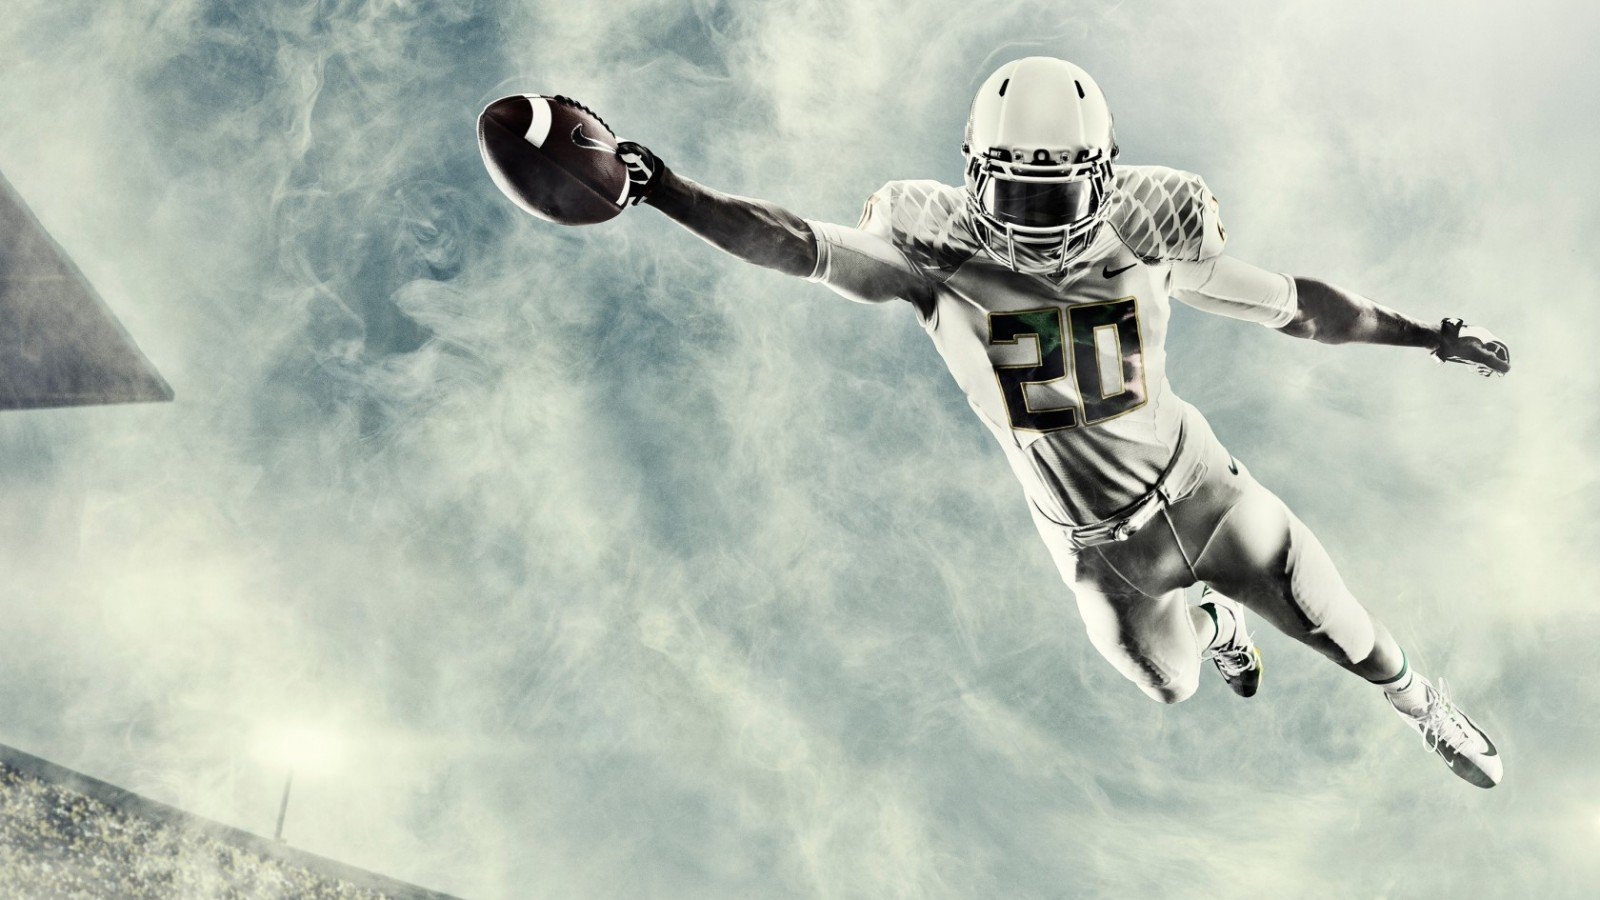 American Football HD wallpaper 1600x900